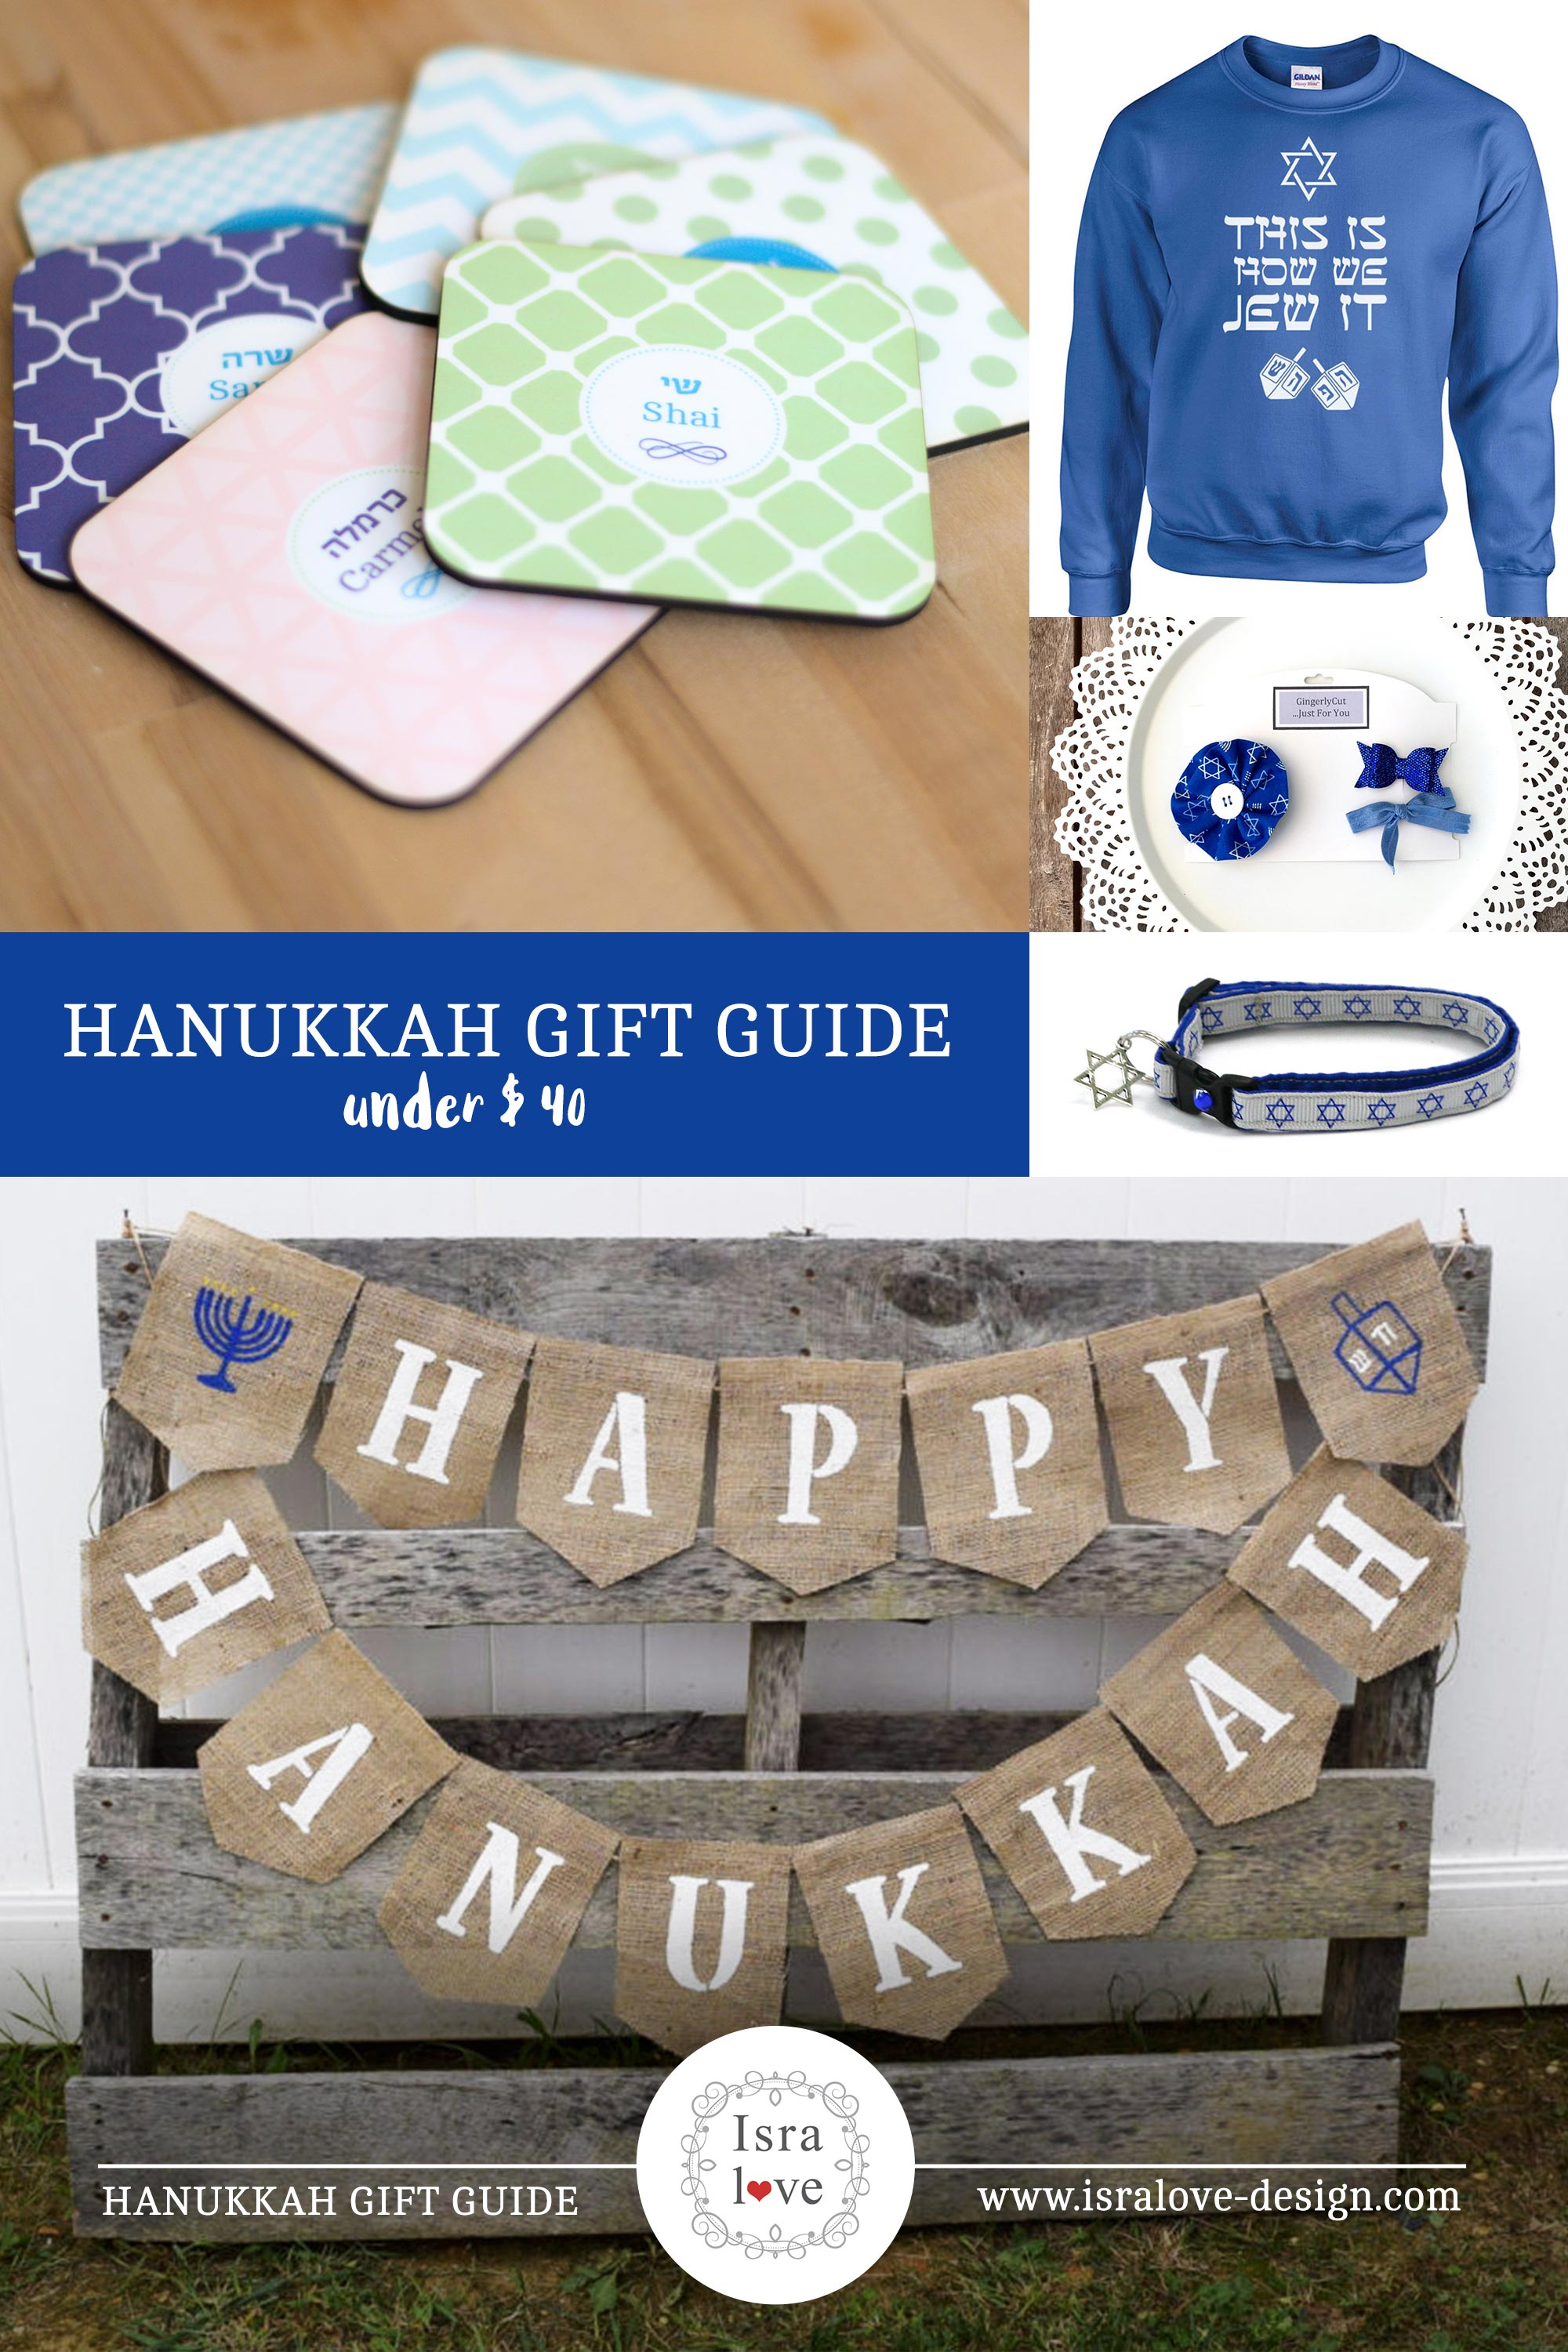 The ultimate Hanukkah gift guide for everyone in the family - including pets. The Jewish festival of lights, Dreidel, Latkes, Chanukah, Chanukkah, Modern Jewish gifts